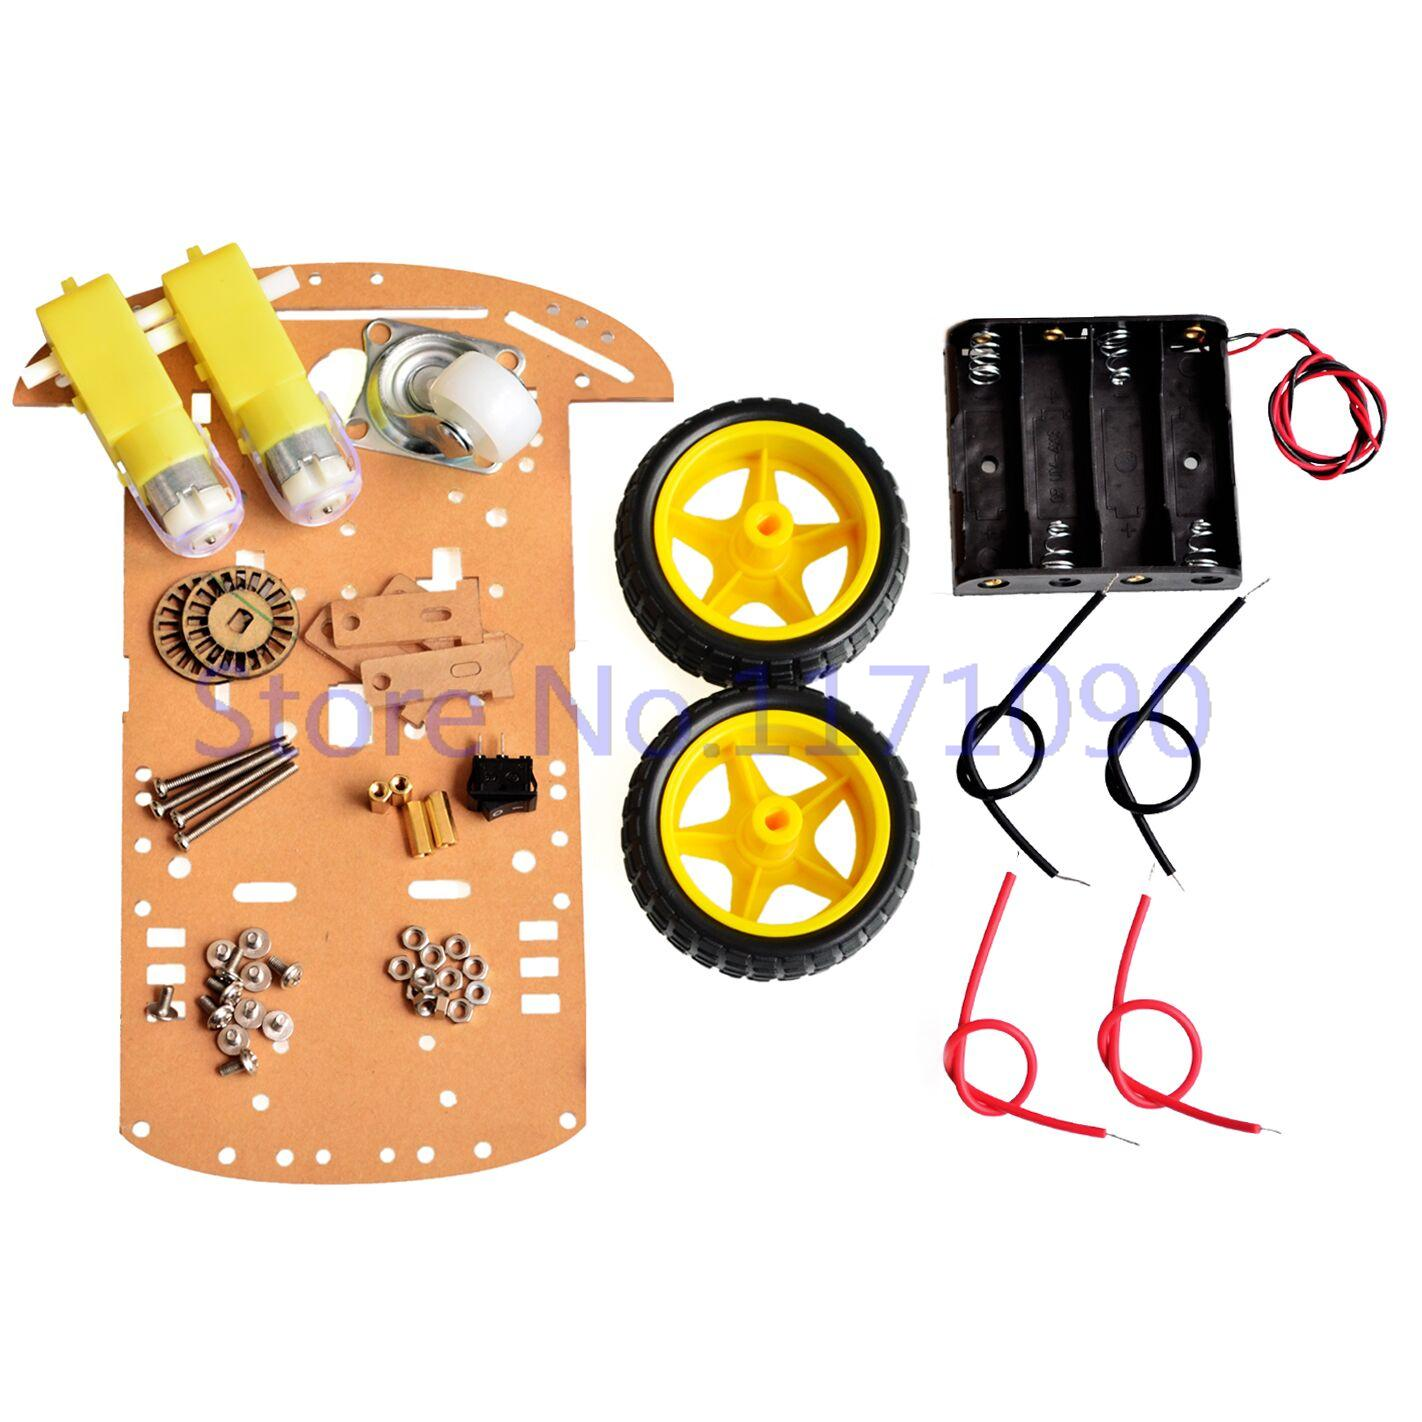 Special promotions !!! Smart car chassis /Tracing car /The robot car chassis /With code disc / tachometer /Send the battery box(China (Mainland))